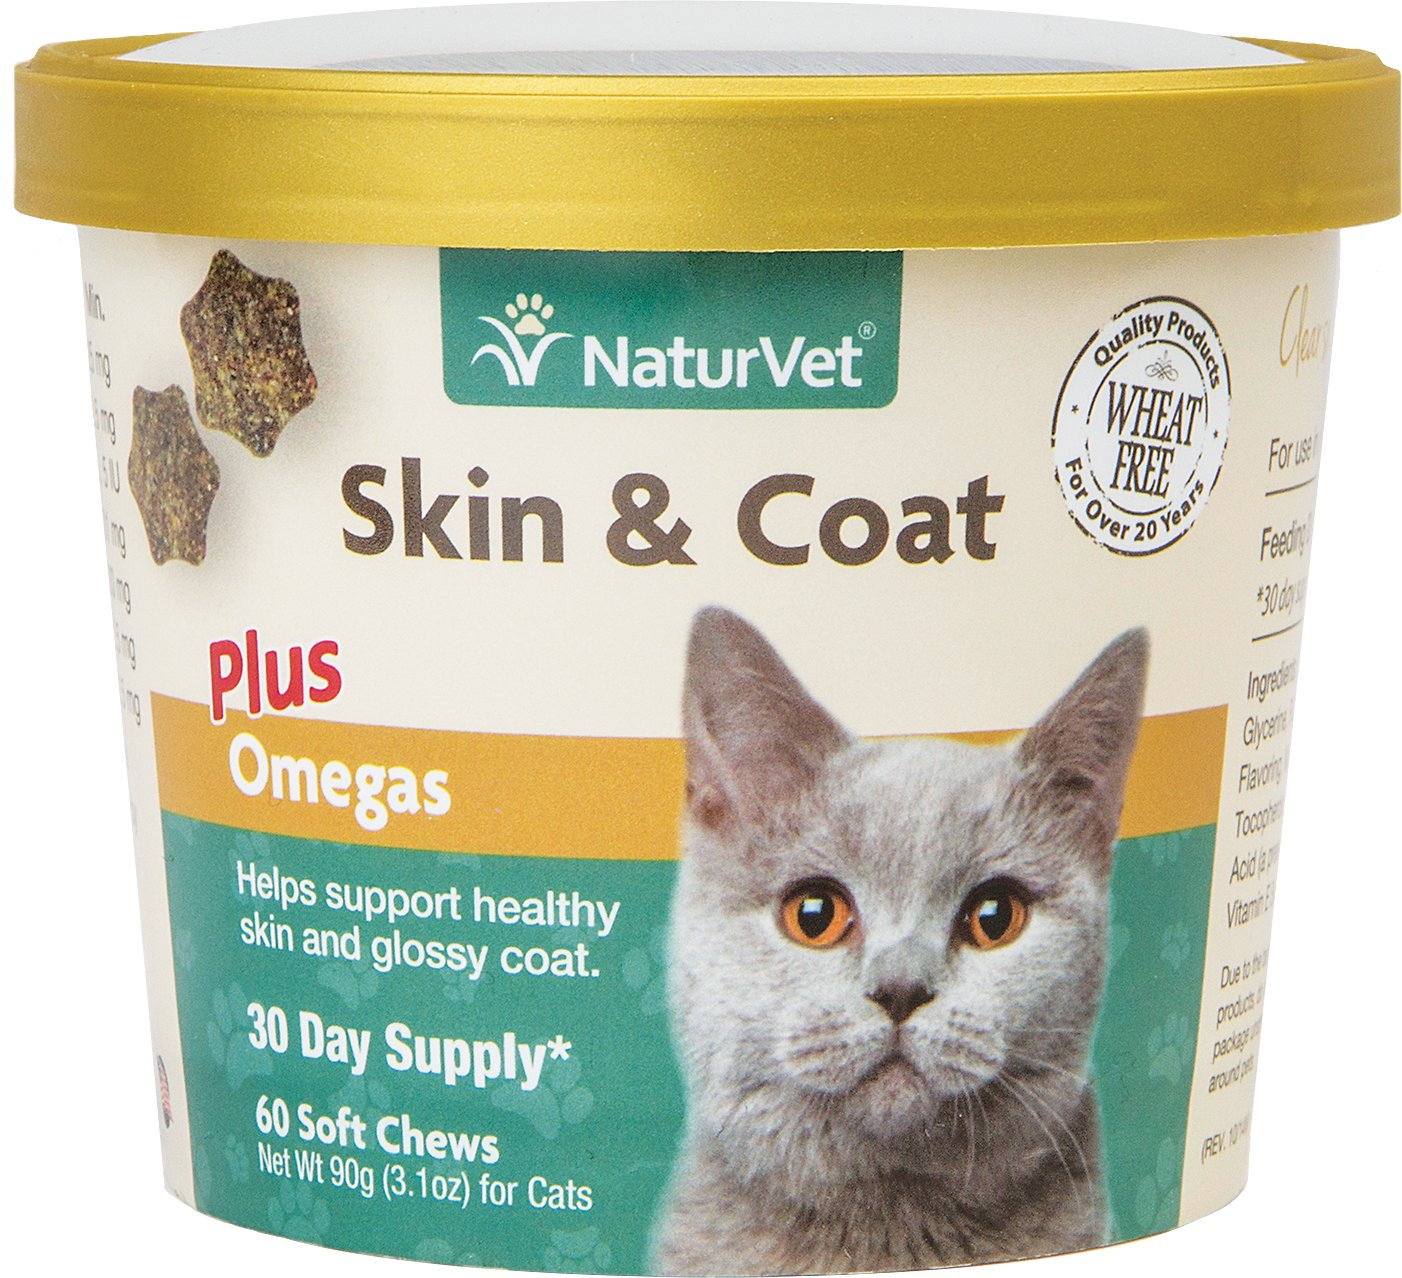 NaturVet Skin & Coat Plus Omegas Cat Soft Chews, 60-count